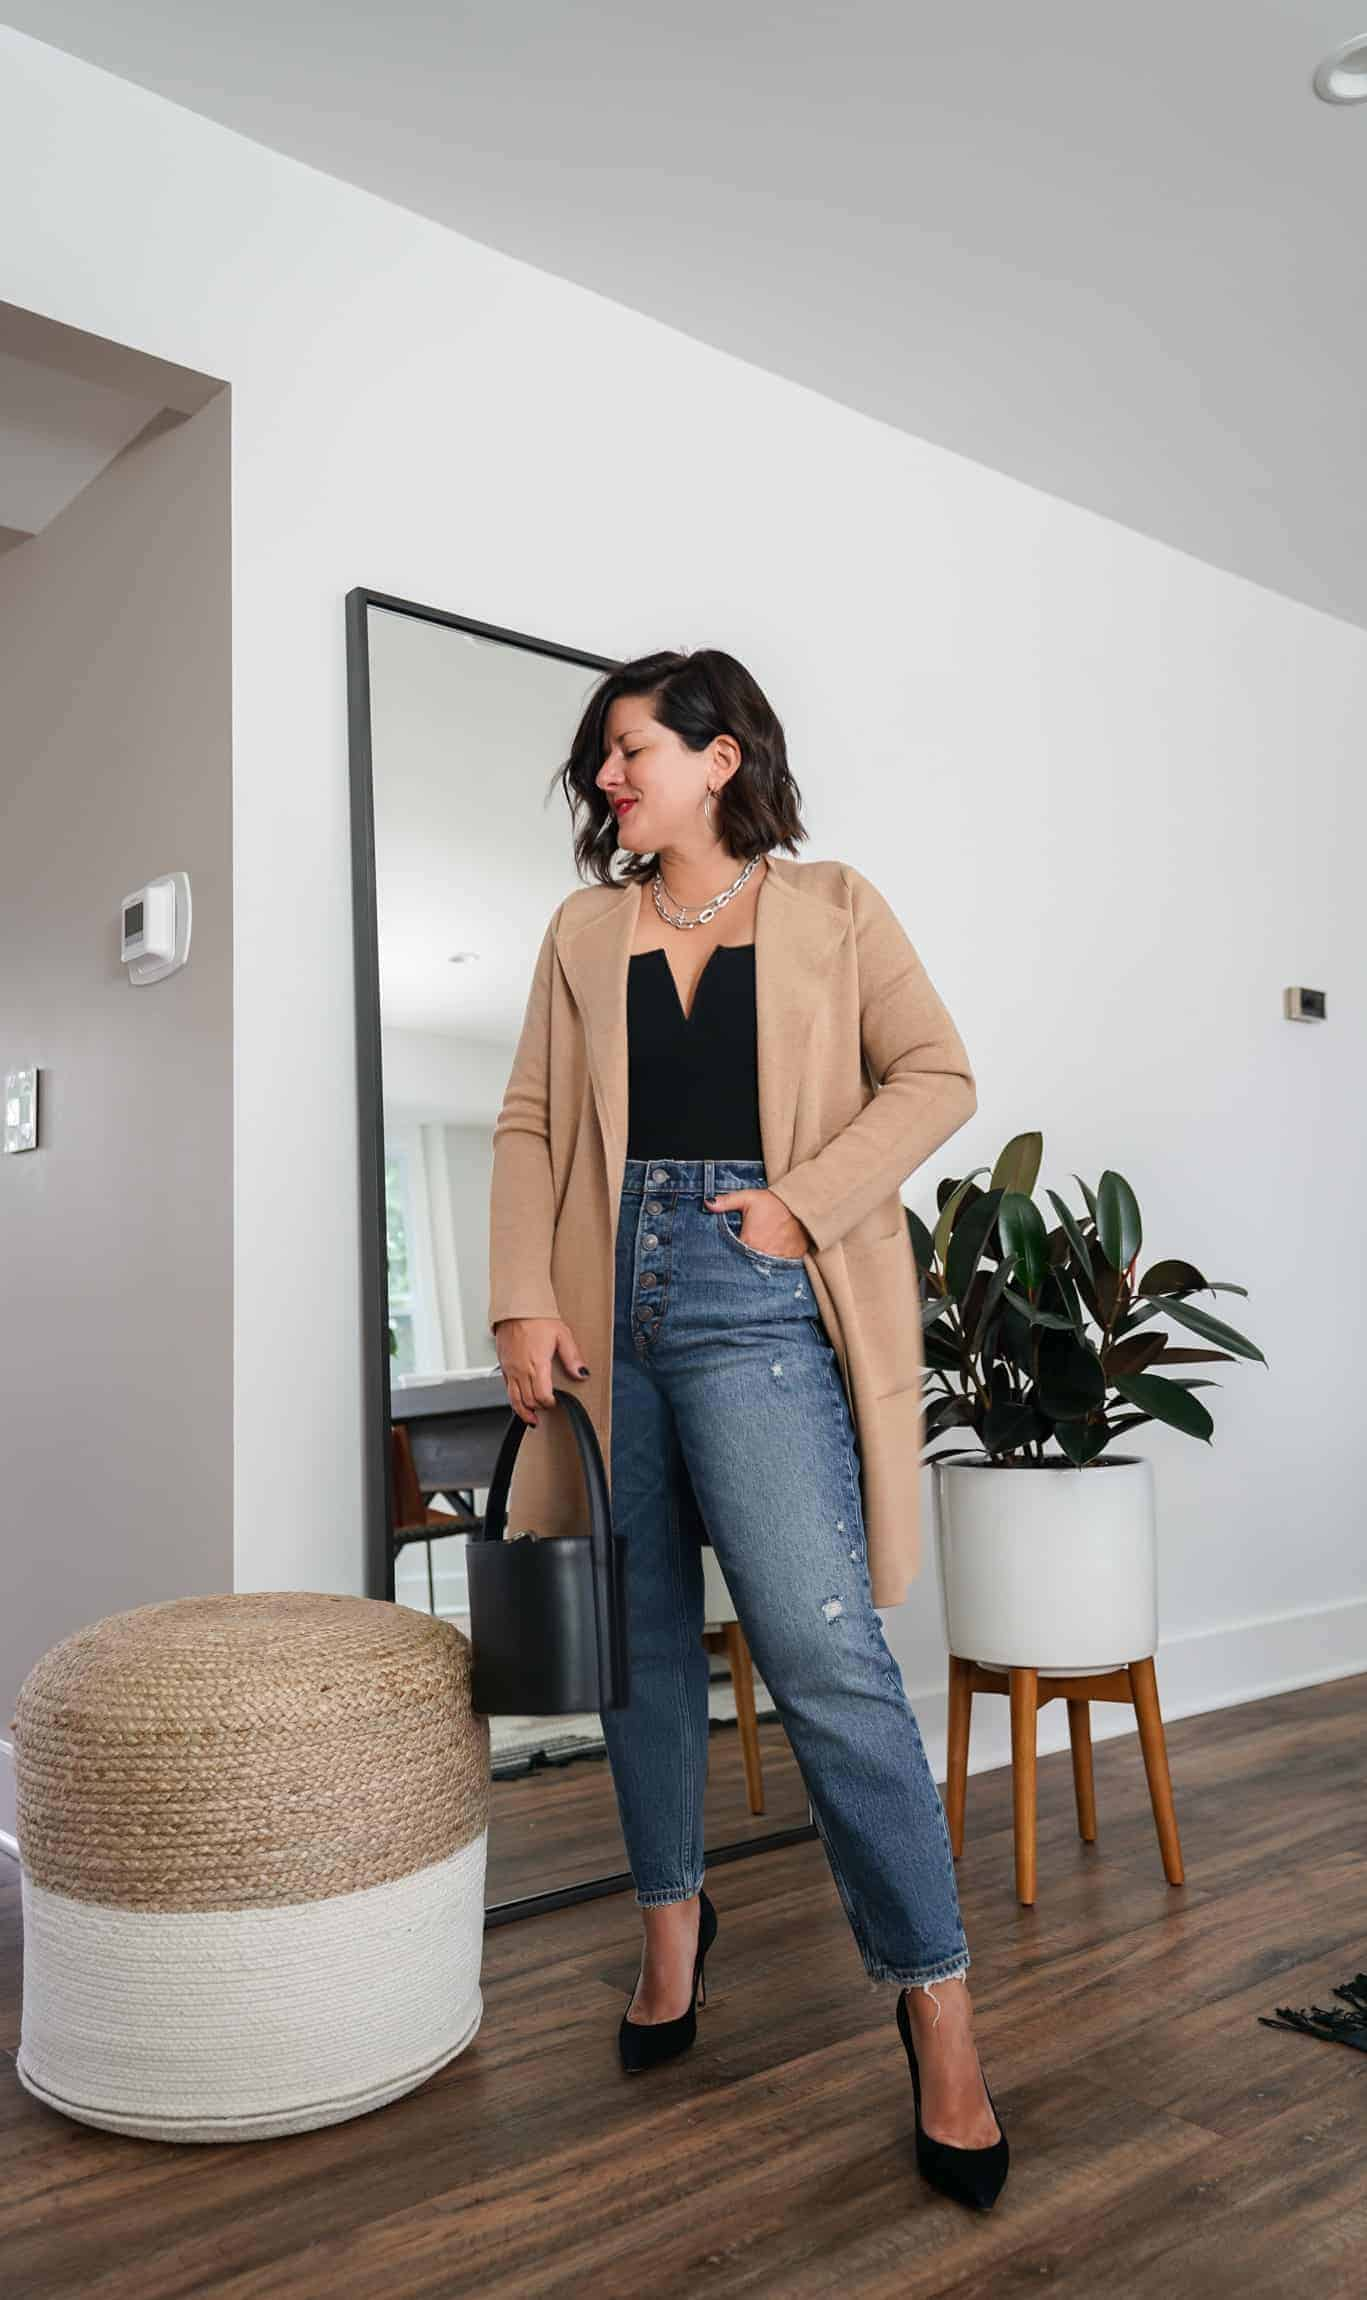 A Lily Love Affair shares how to wear a long cardigan with denim, black tank top and black heels